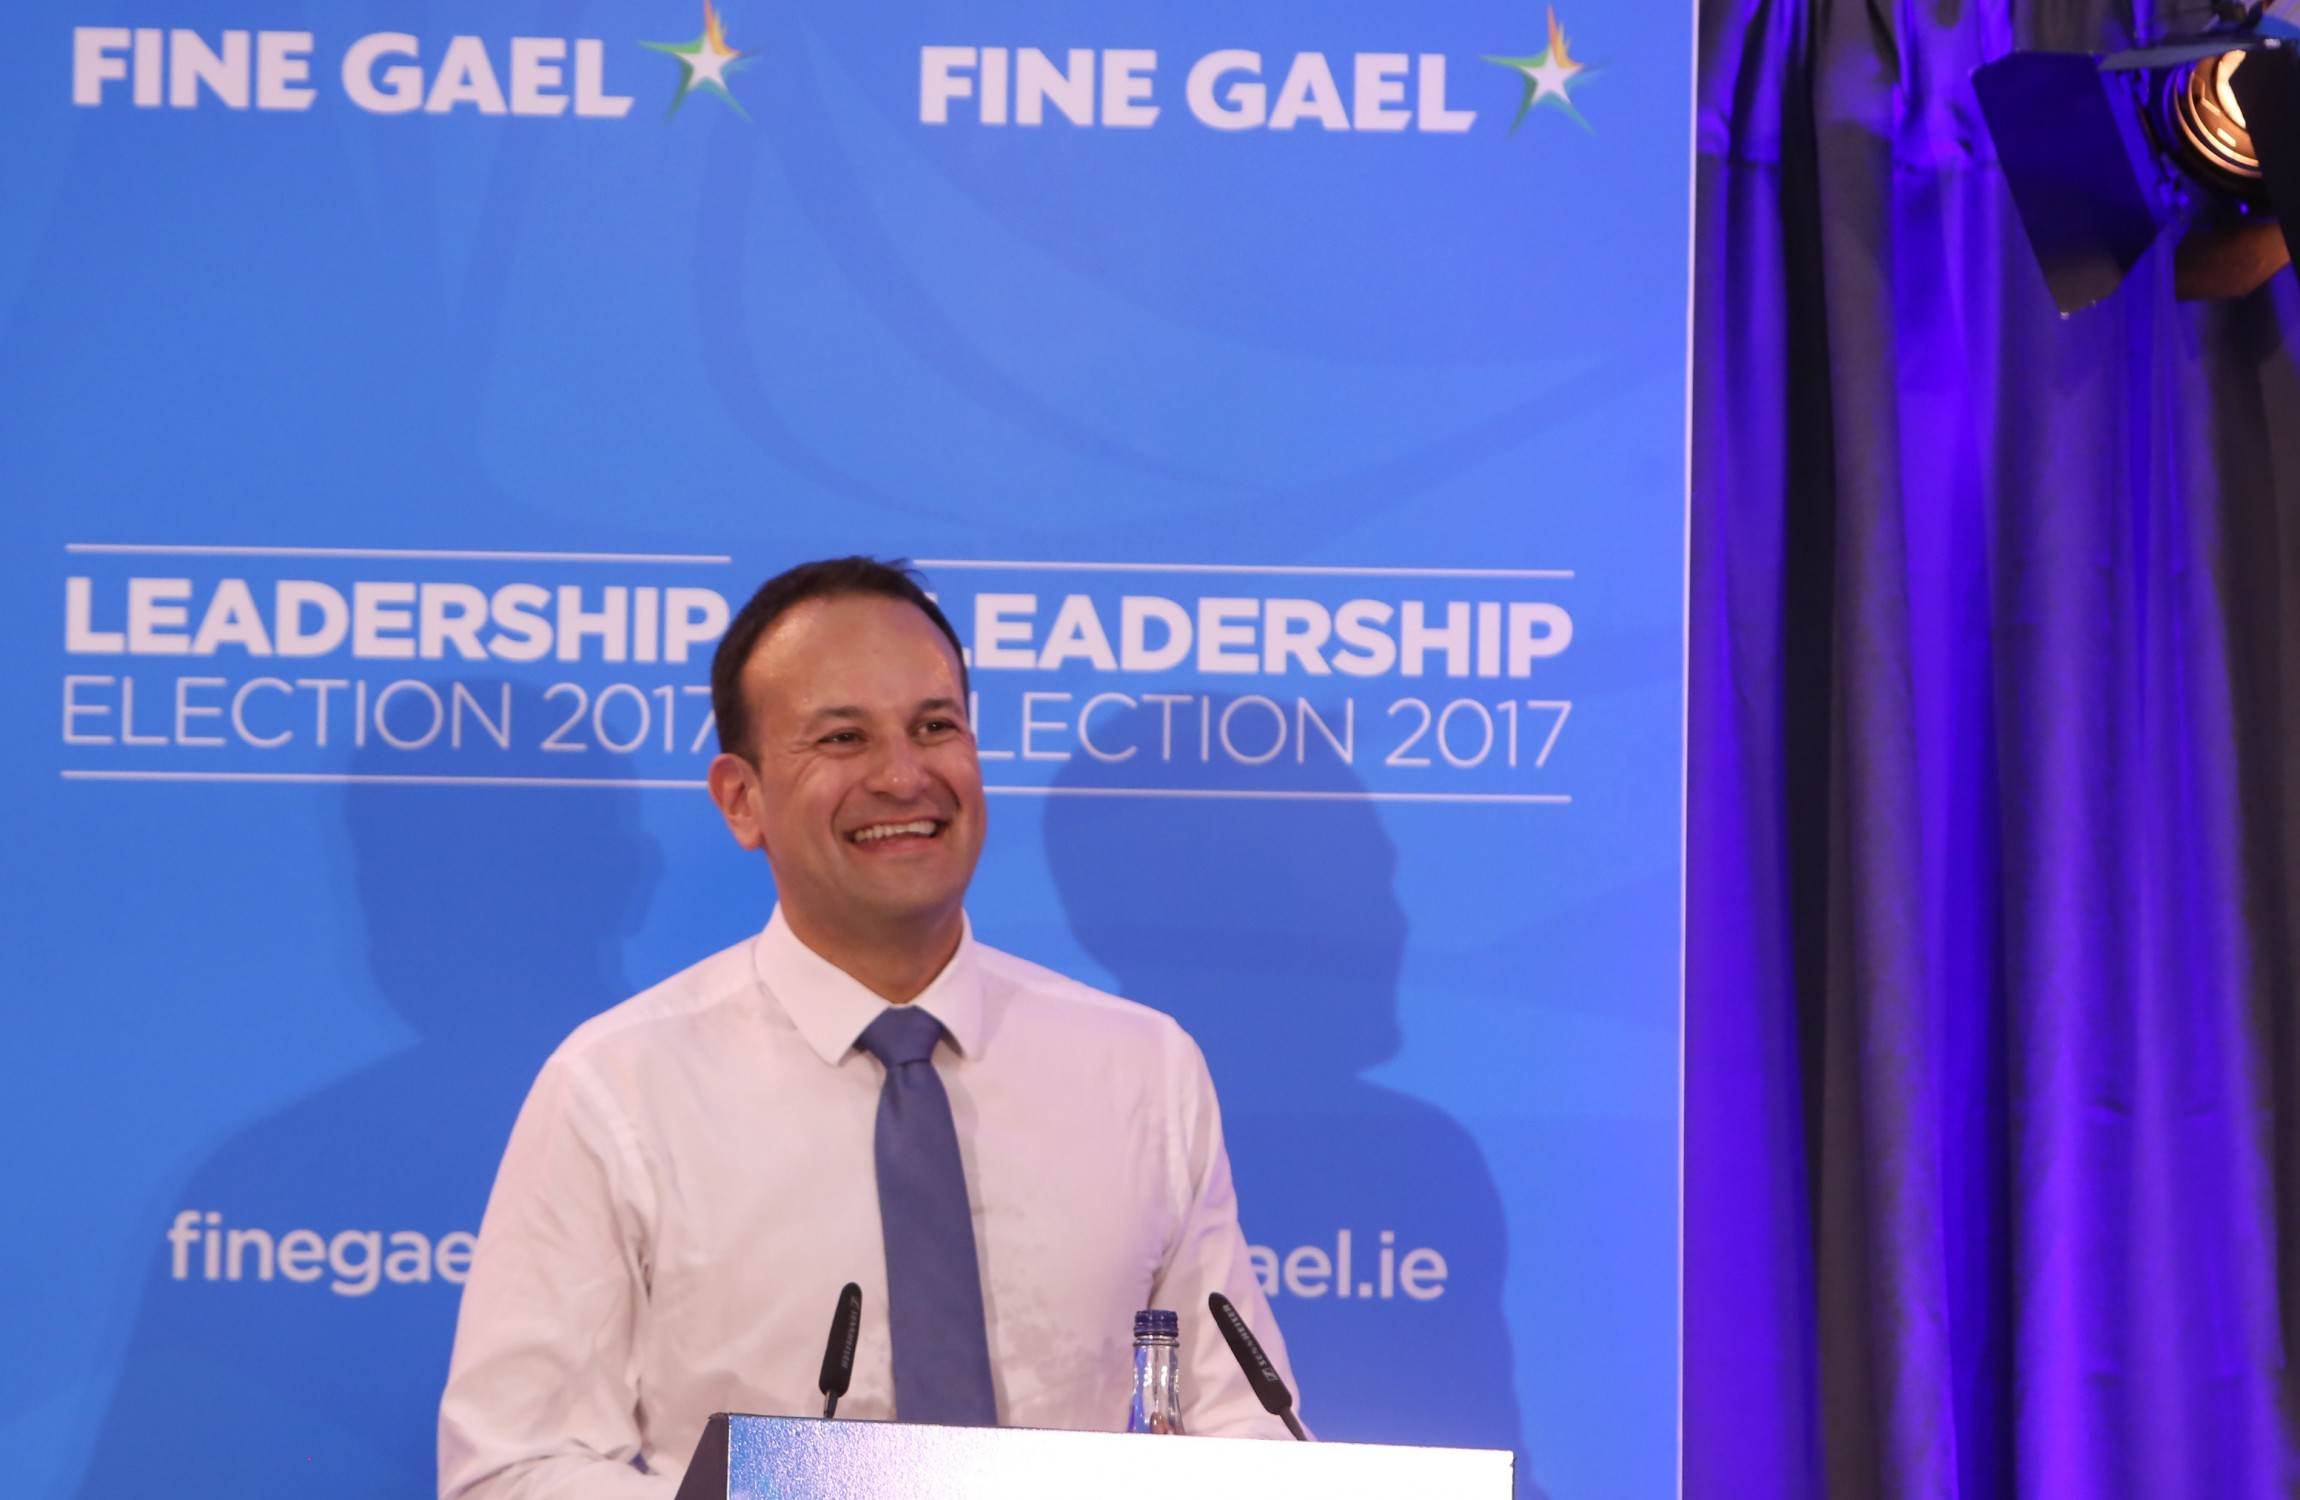 Ireland set to have first gay PM